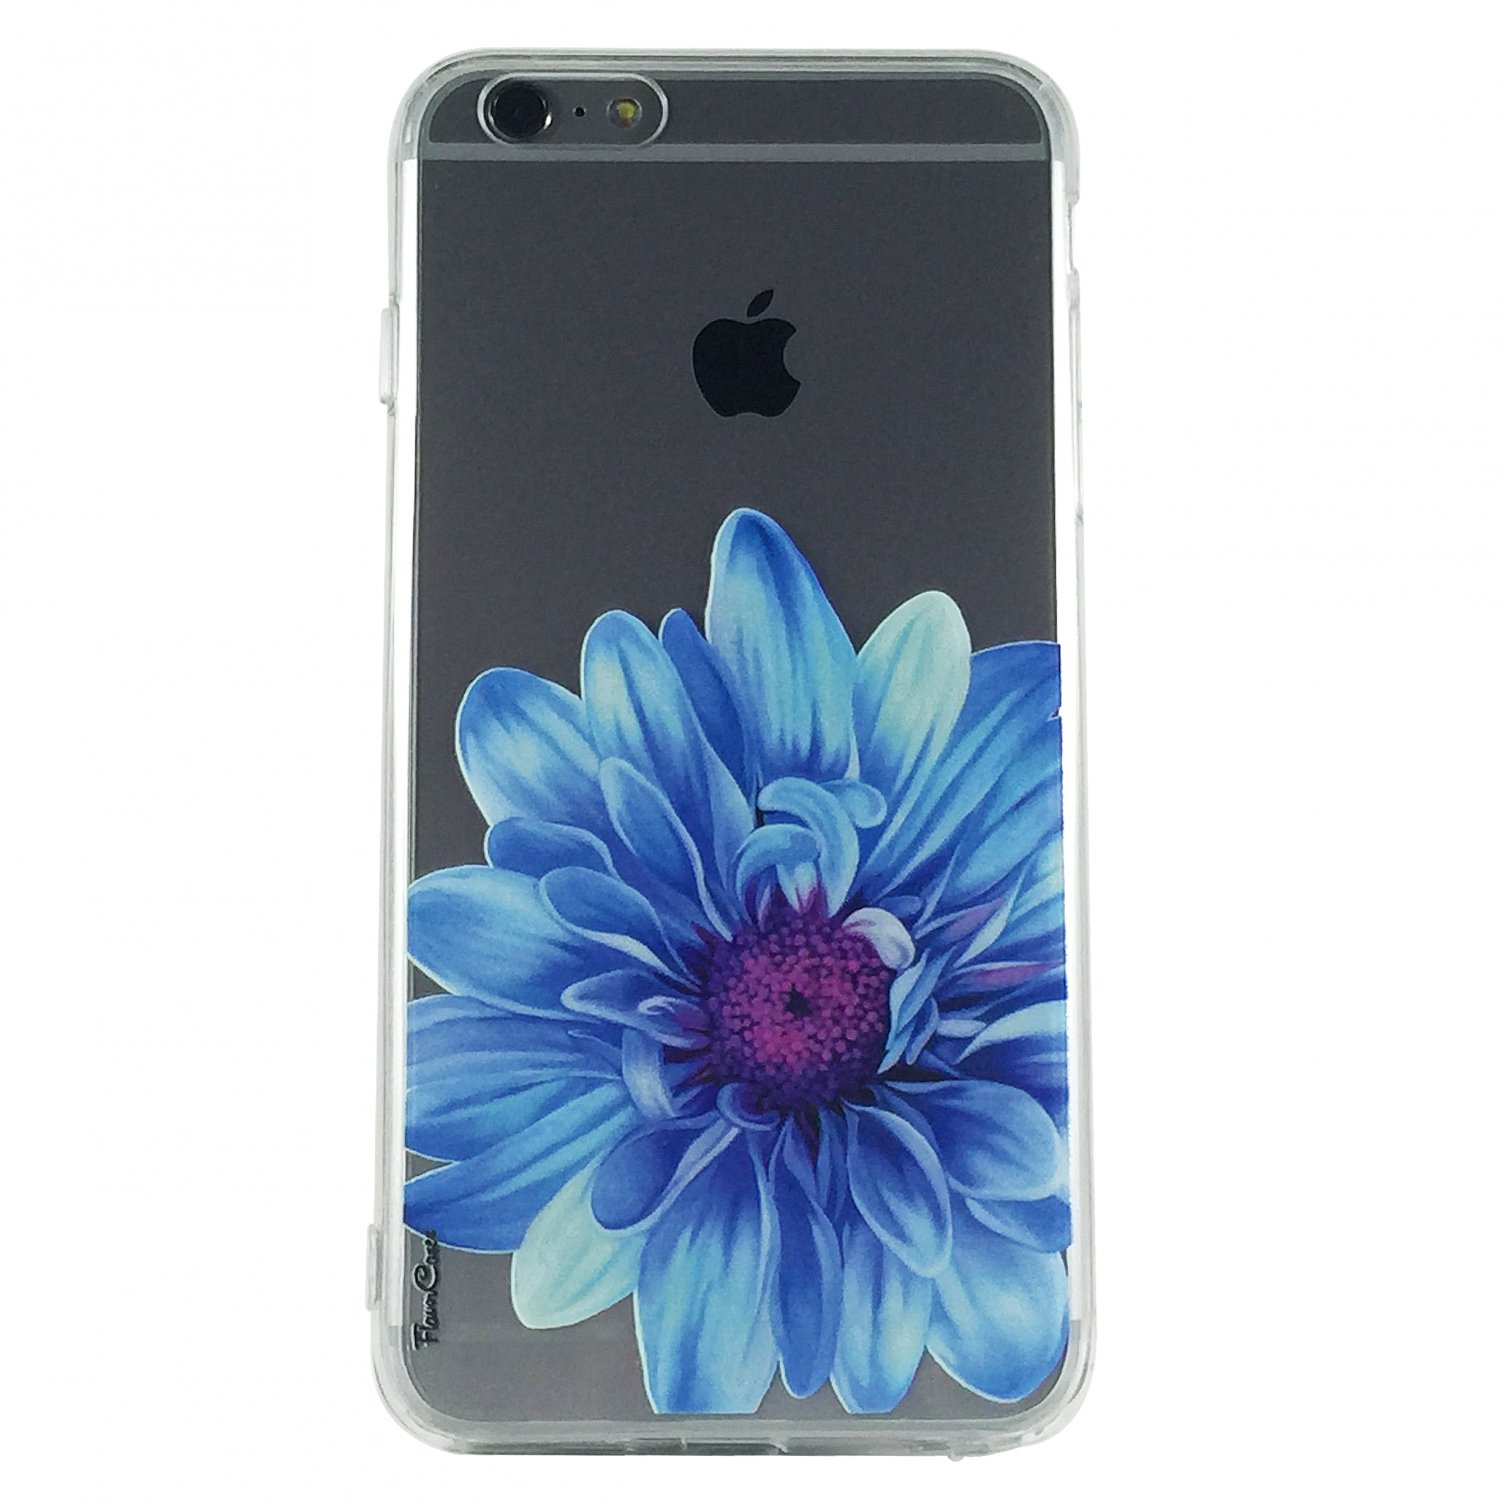 Mums Flowers -New Floral Mums Cell Phone Cases iPhone 6 plus ip6  plus